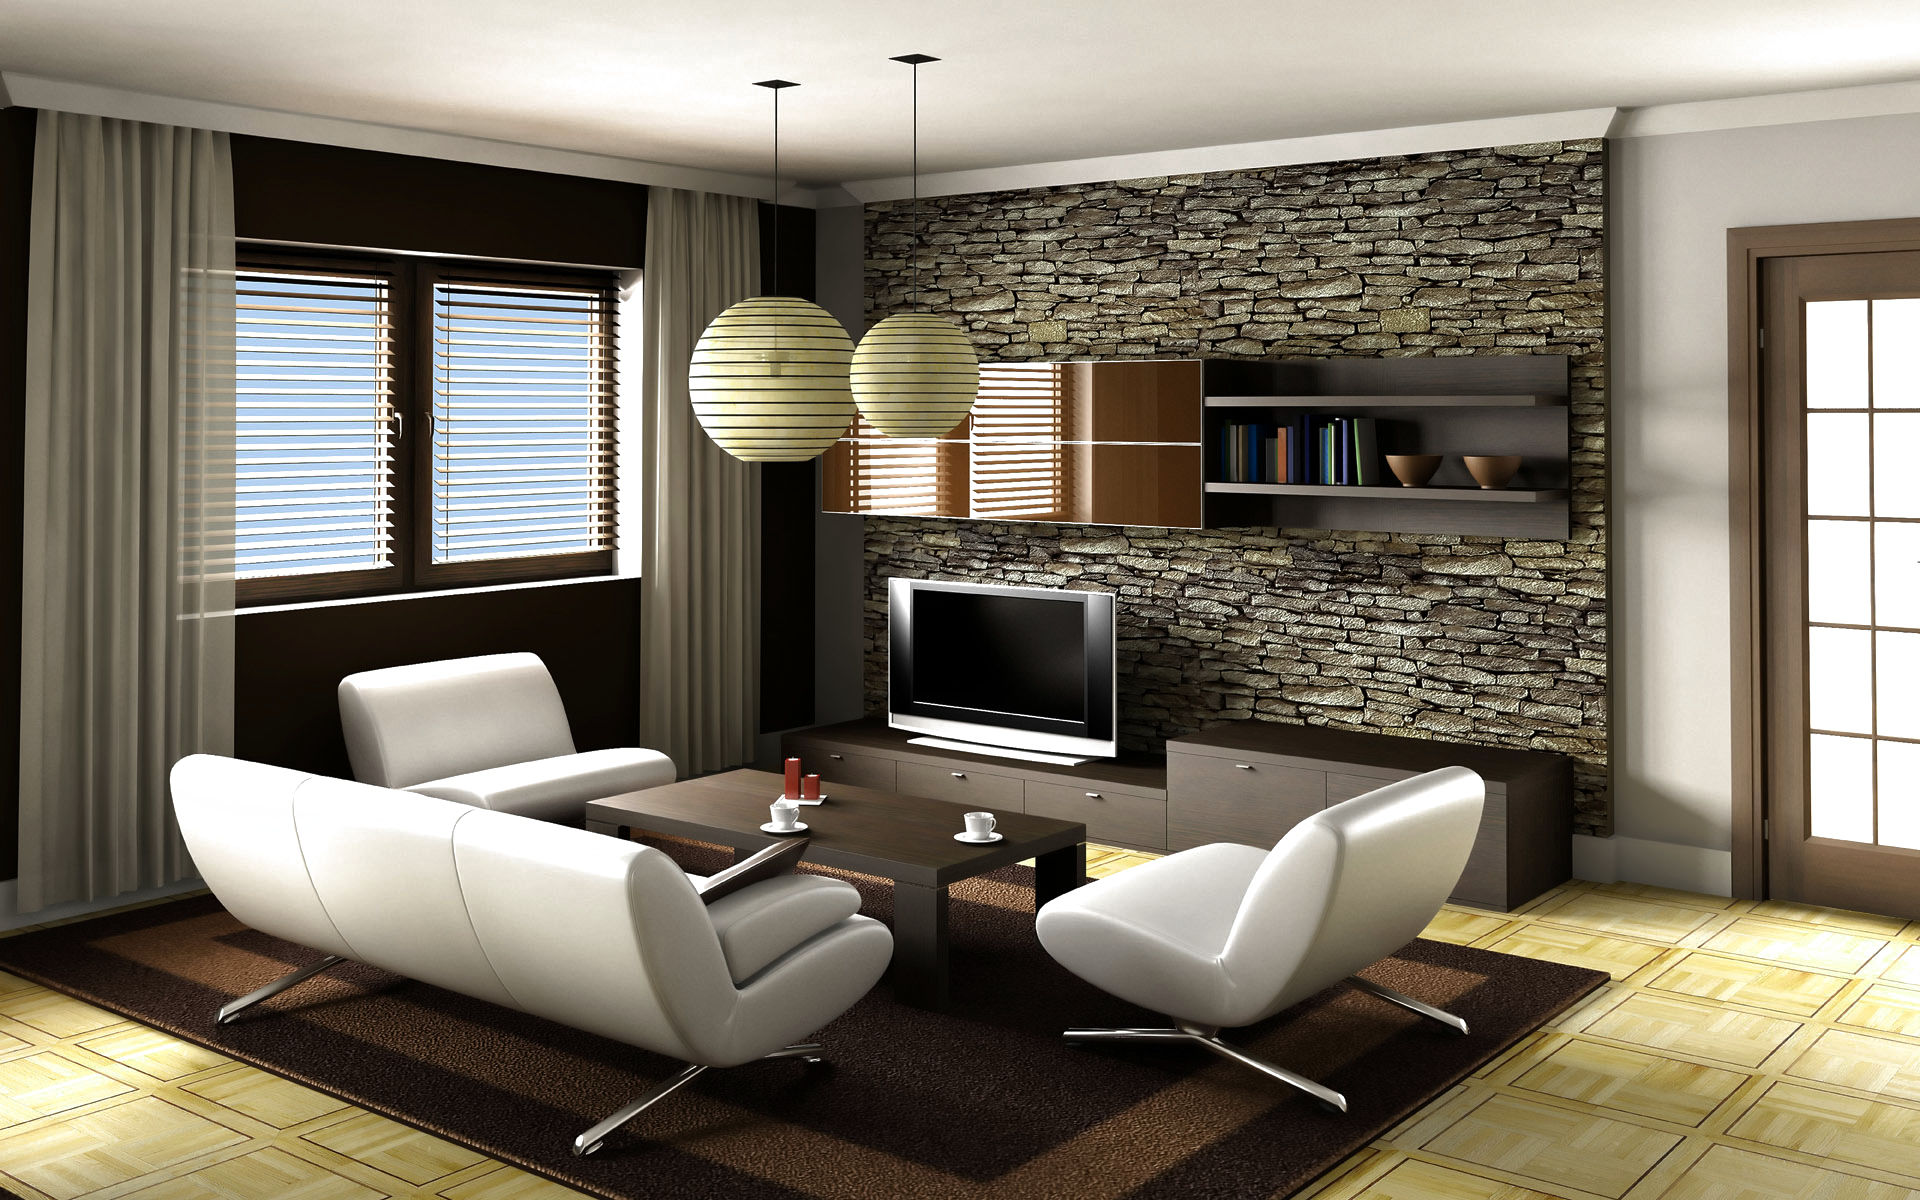 16 modern living room furniture ideas design hgnv com - Furniture design for living room ...